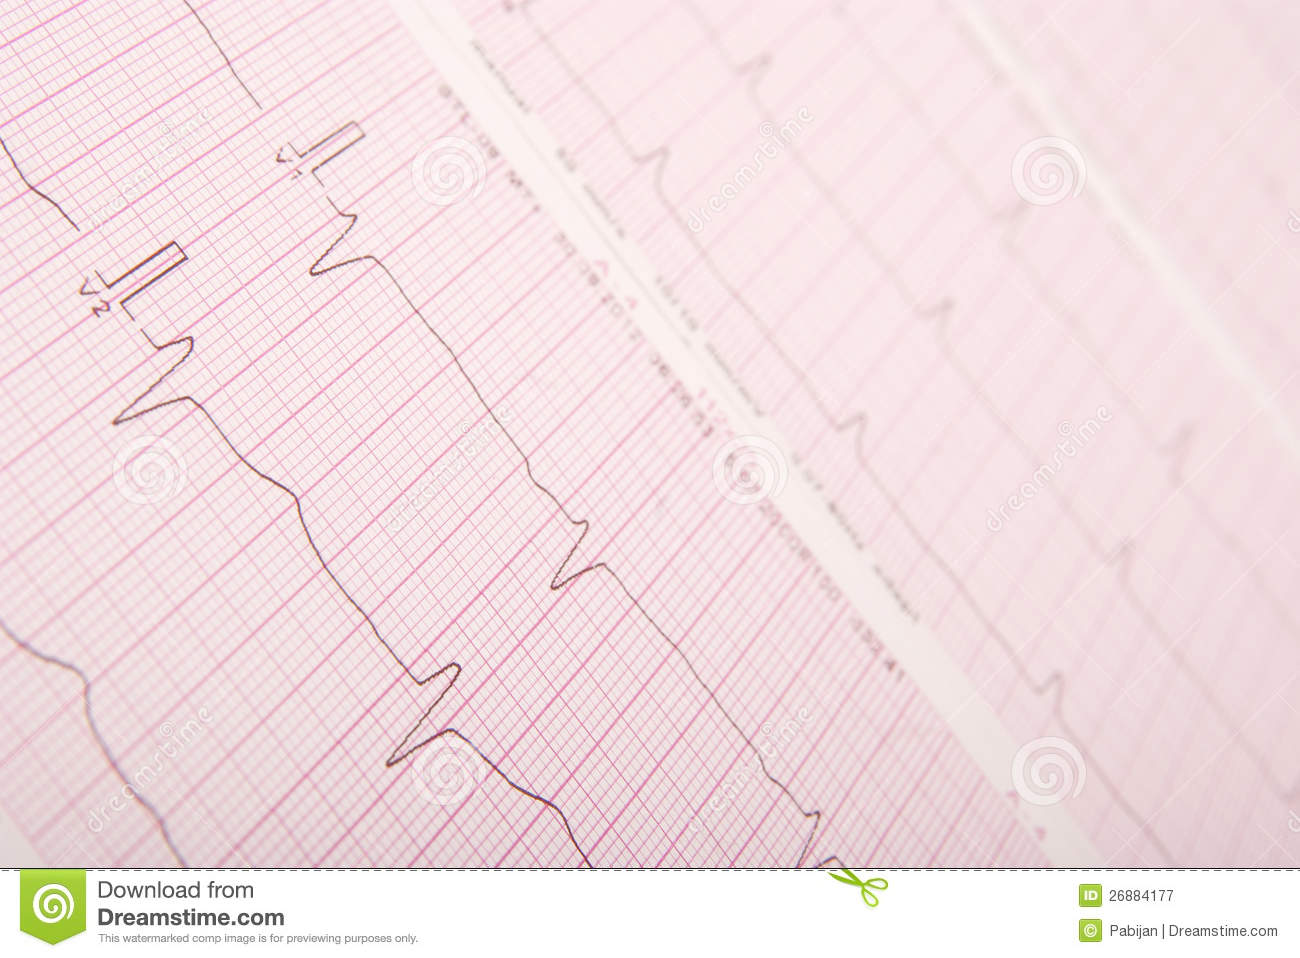 how to read ecg results